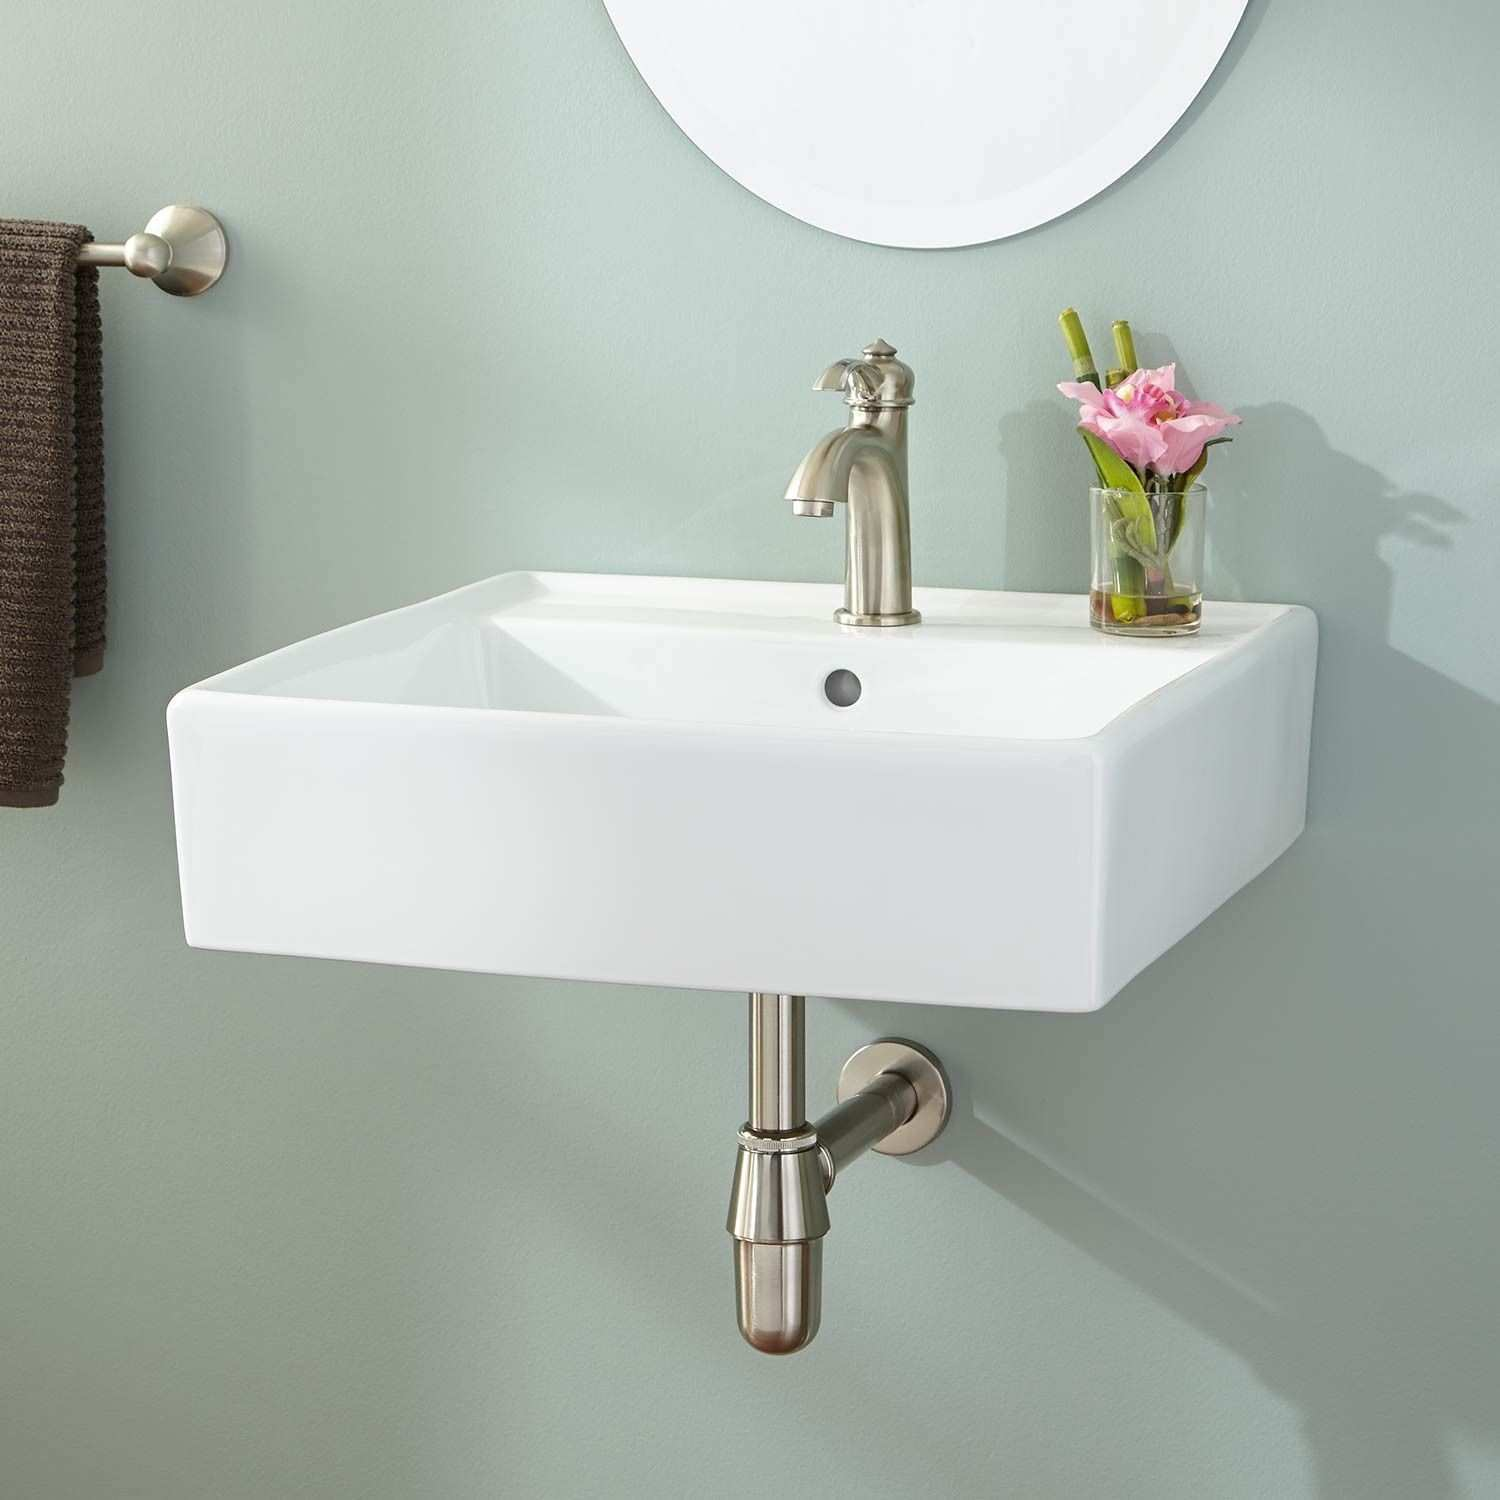 Painting Ideas For Bathroom Walls Olney Porcelain Wall Mount Sink